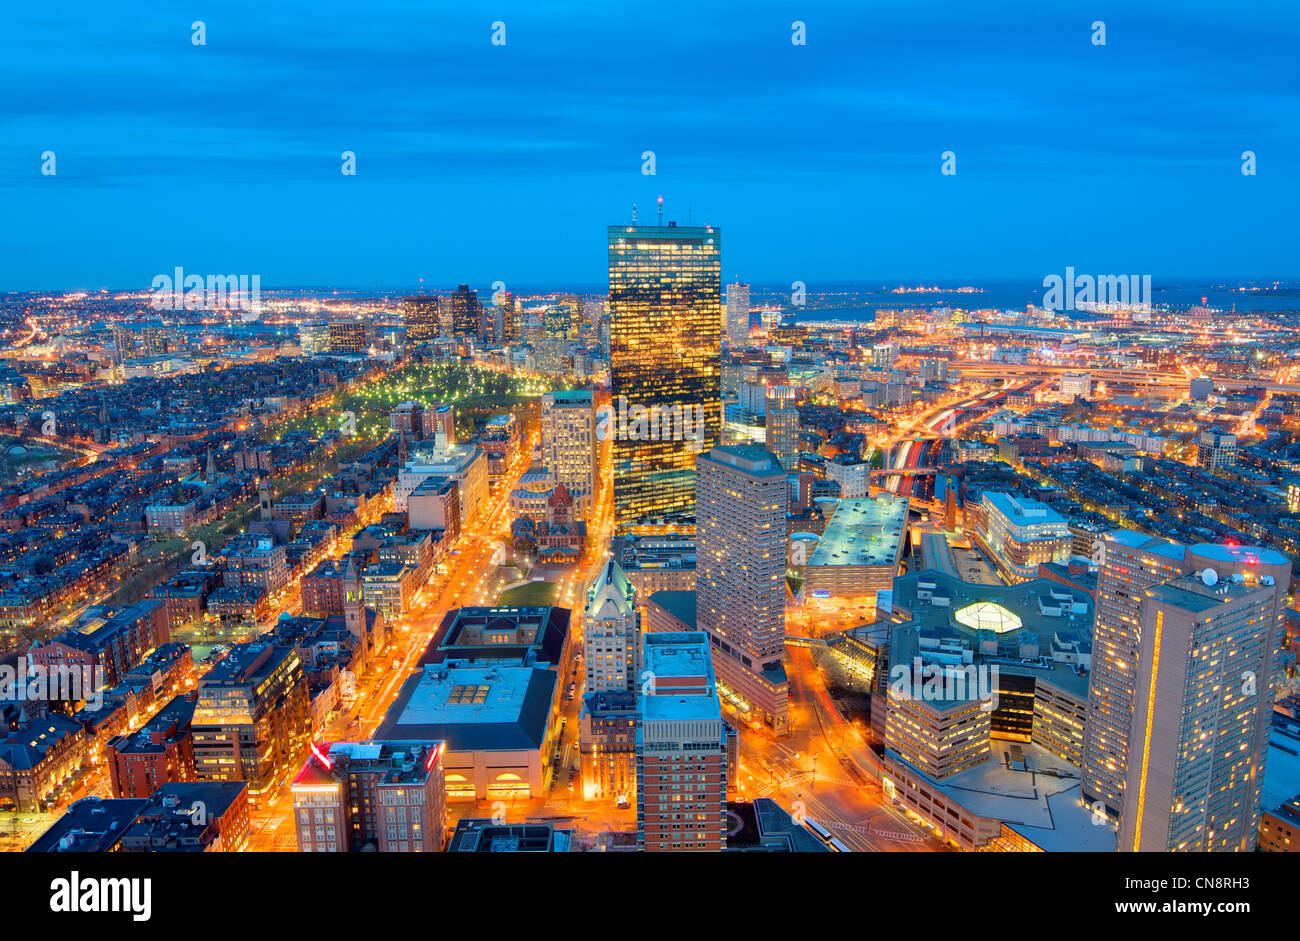 Vista aérea de la ciudad de Boston, Massachusetts, Estados Unidos. Foto de stock